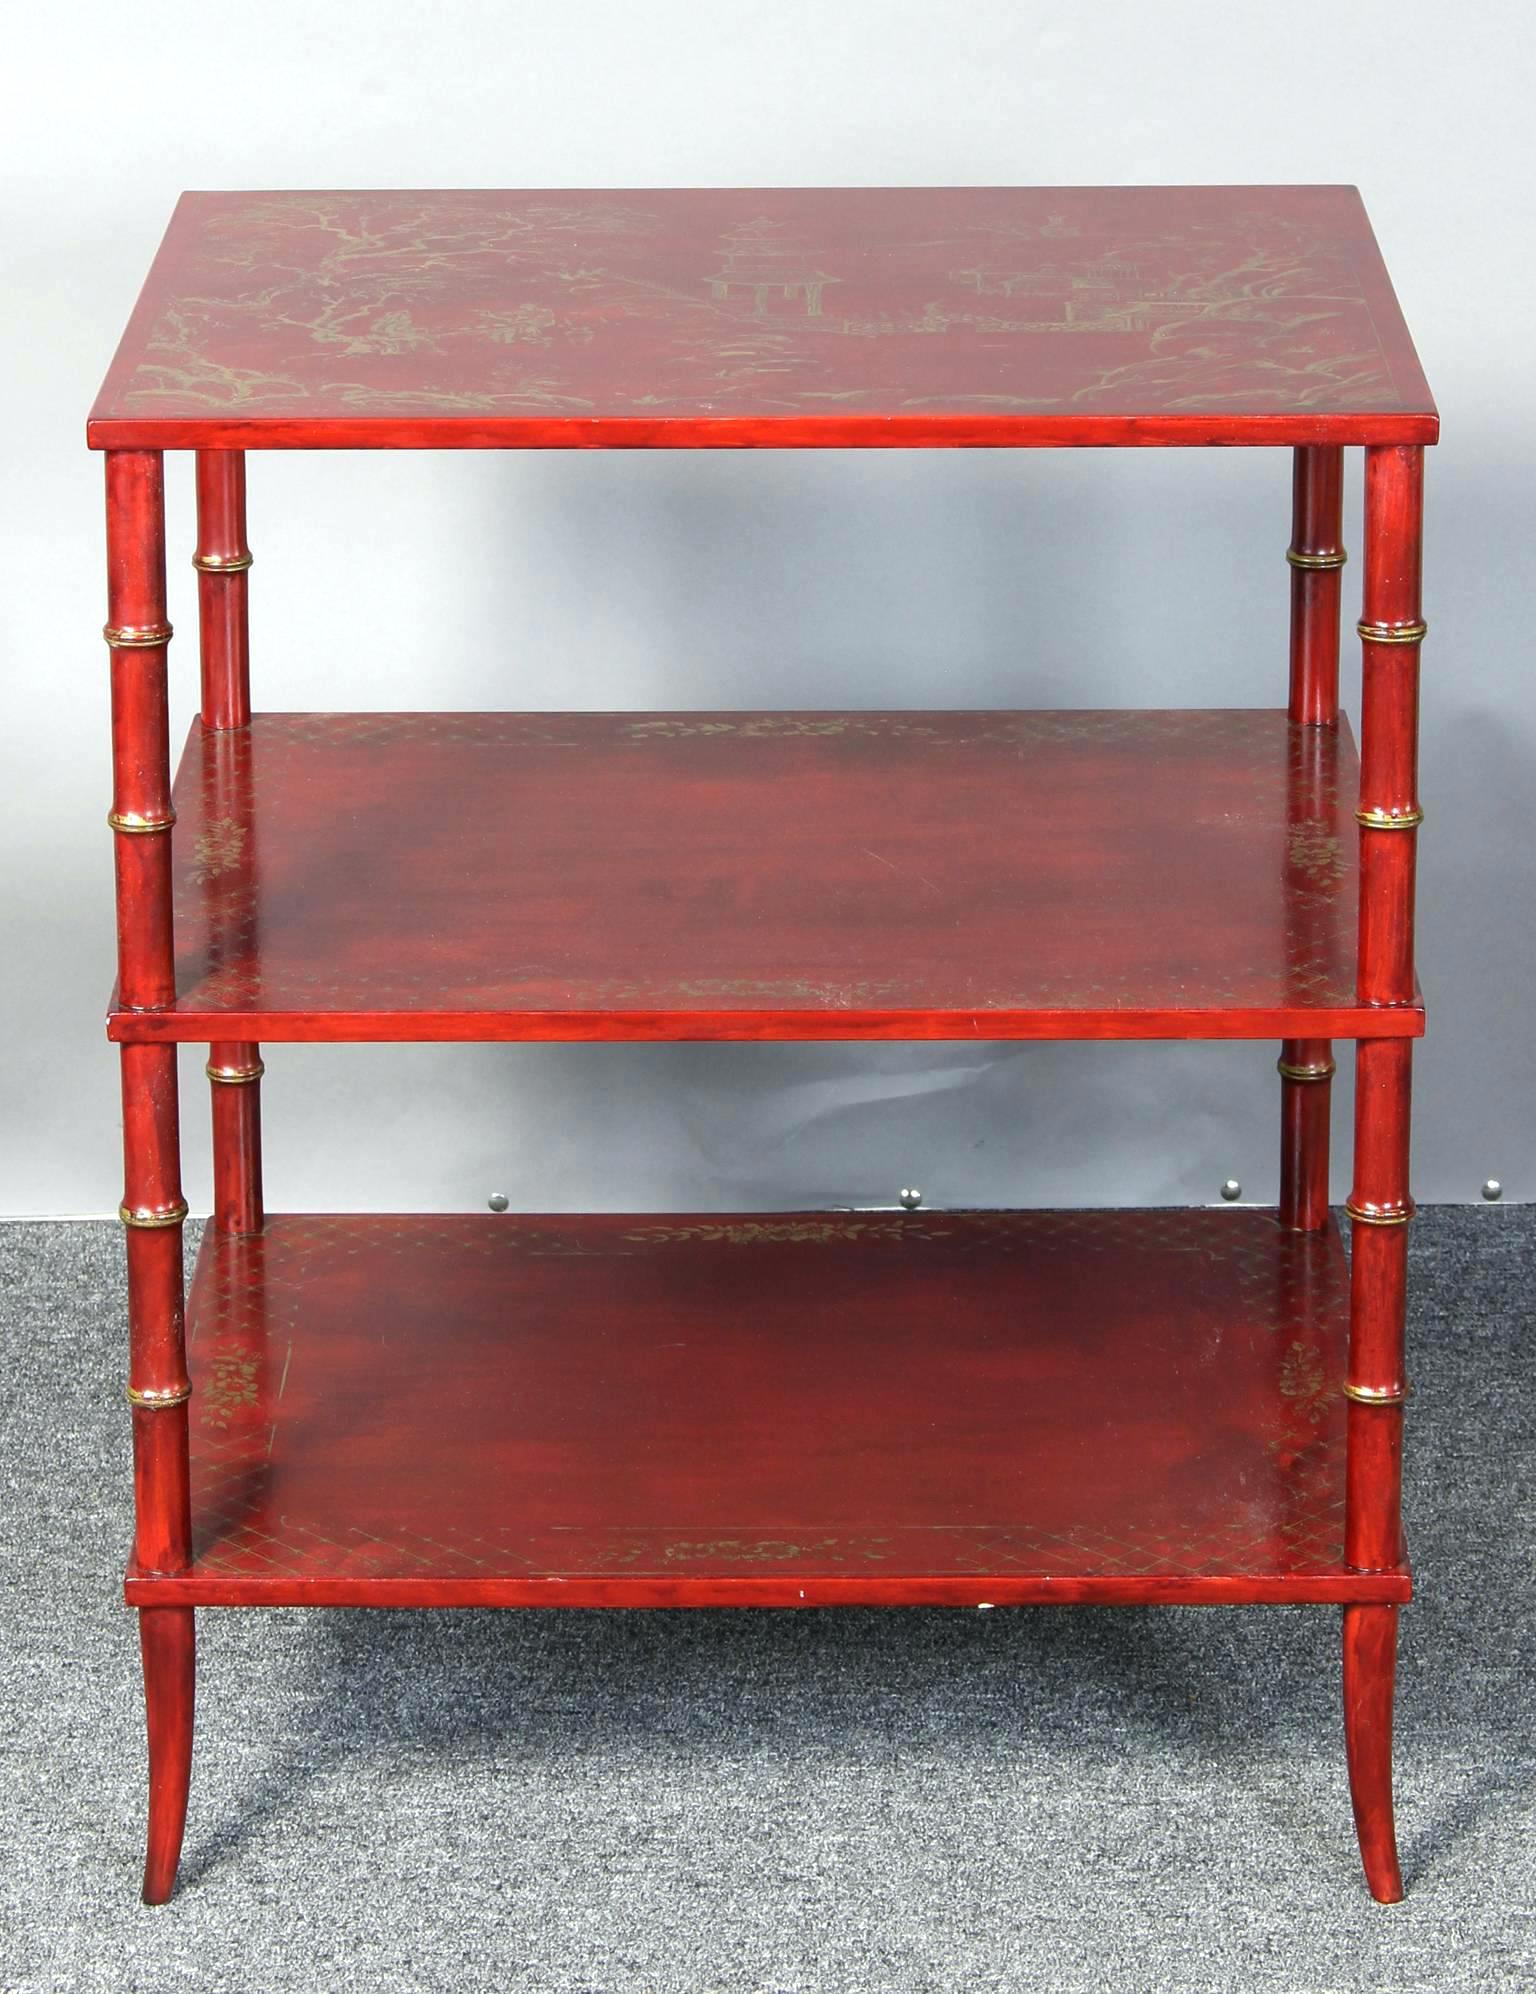 sidetables red side table accent tables living room furniture the decorated three tier for ikea lack small plexiglass cube cloth placemats and napkins ceramic lamp shades only